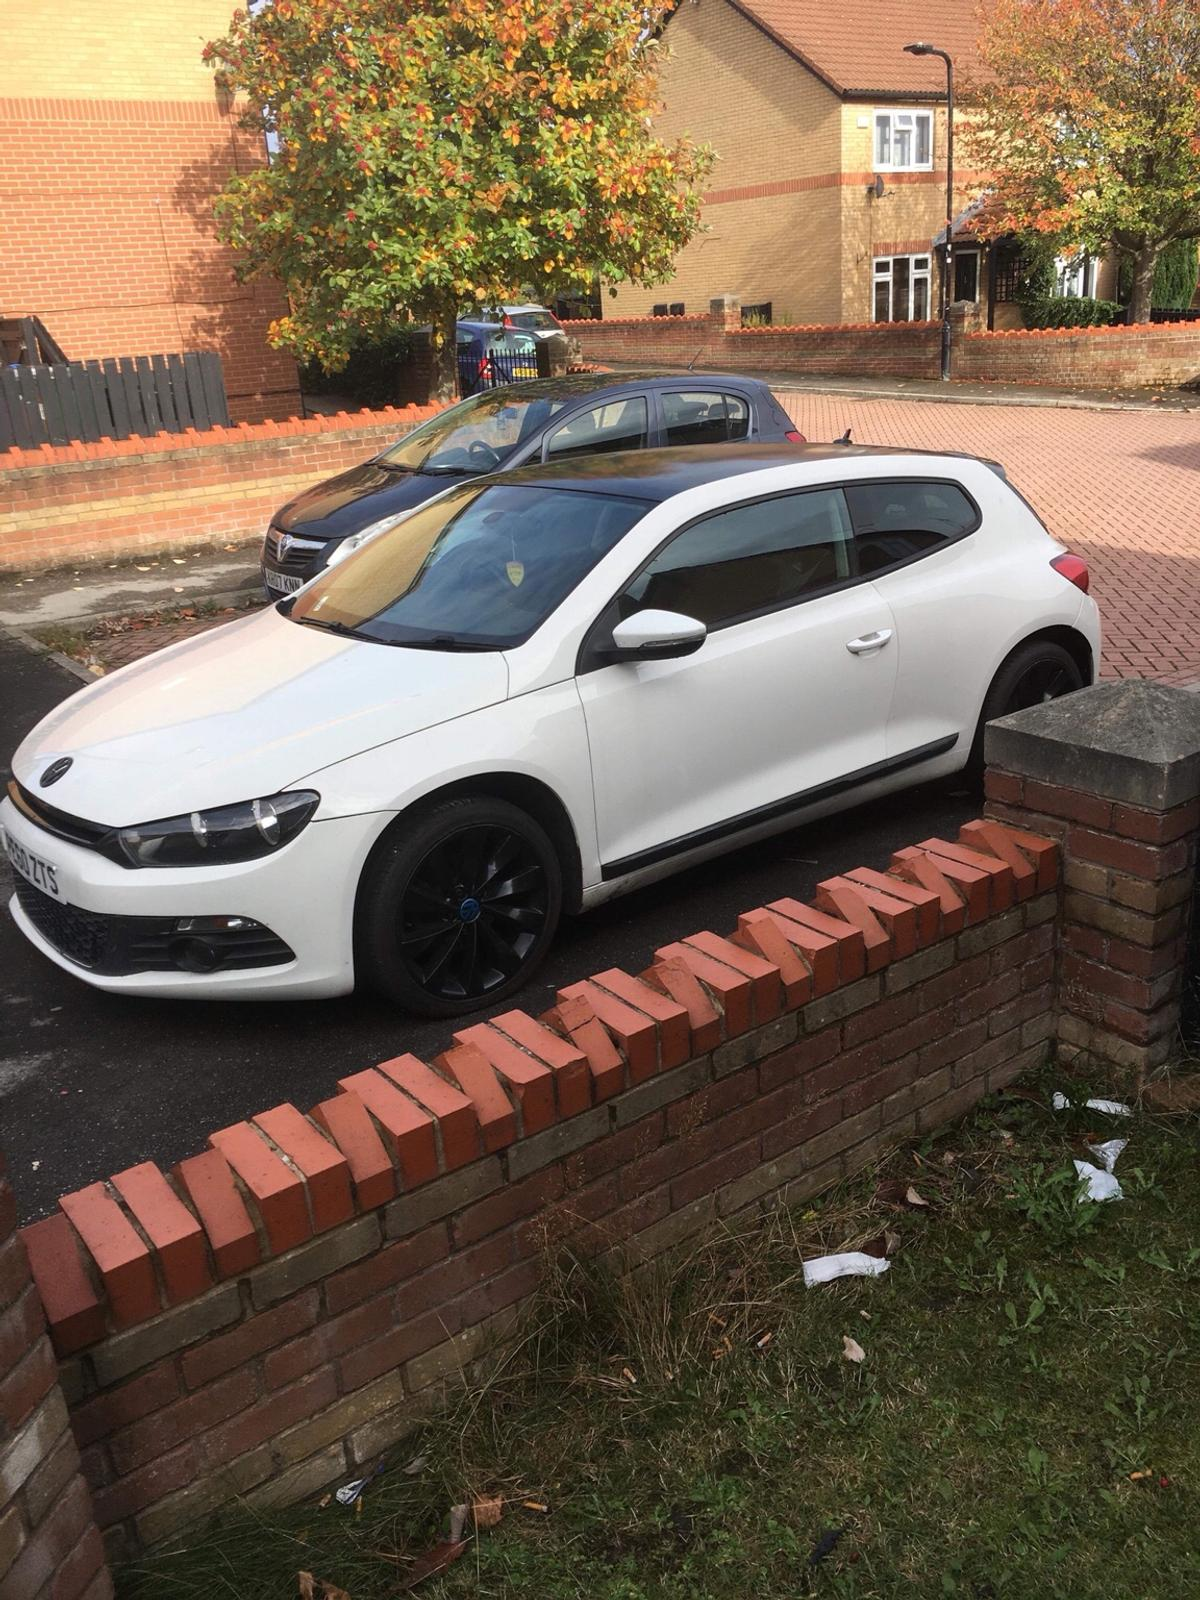 Vw Scirocco In S70 Barnsley For 6 600 00 For Sale Shpock